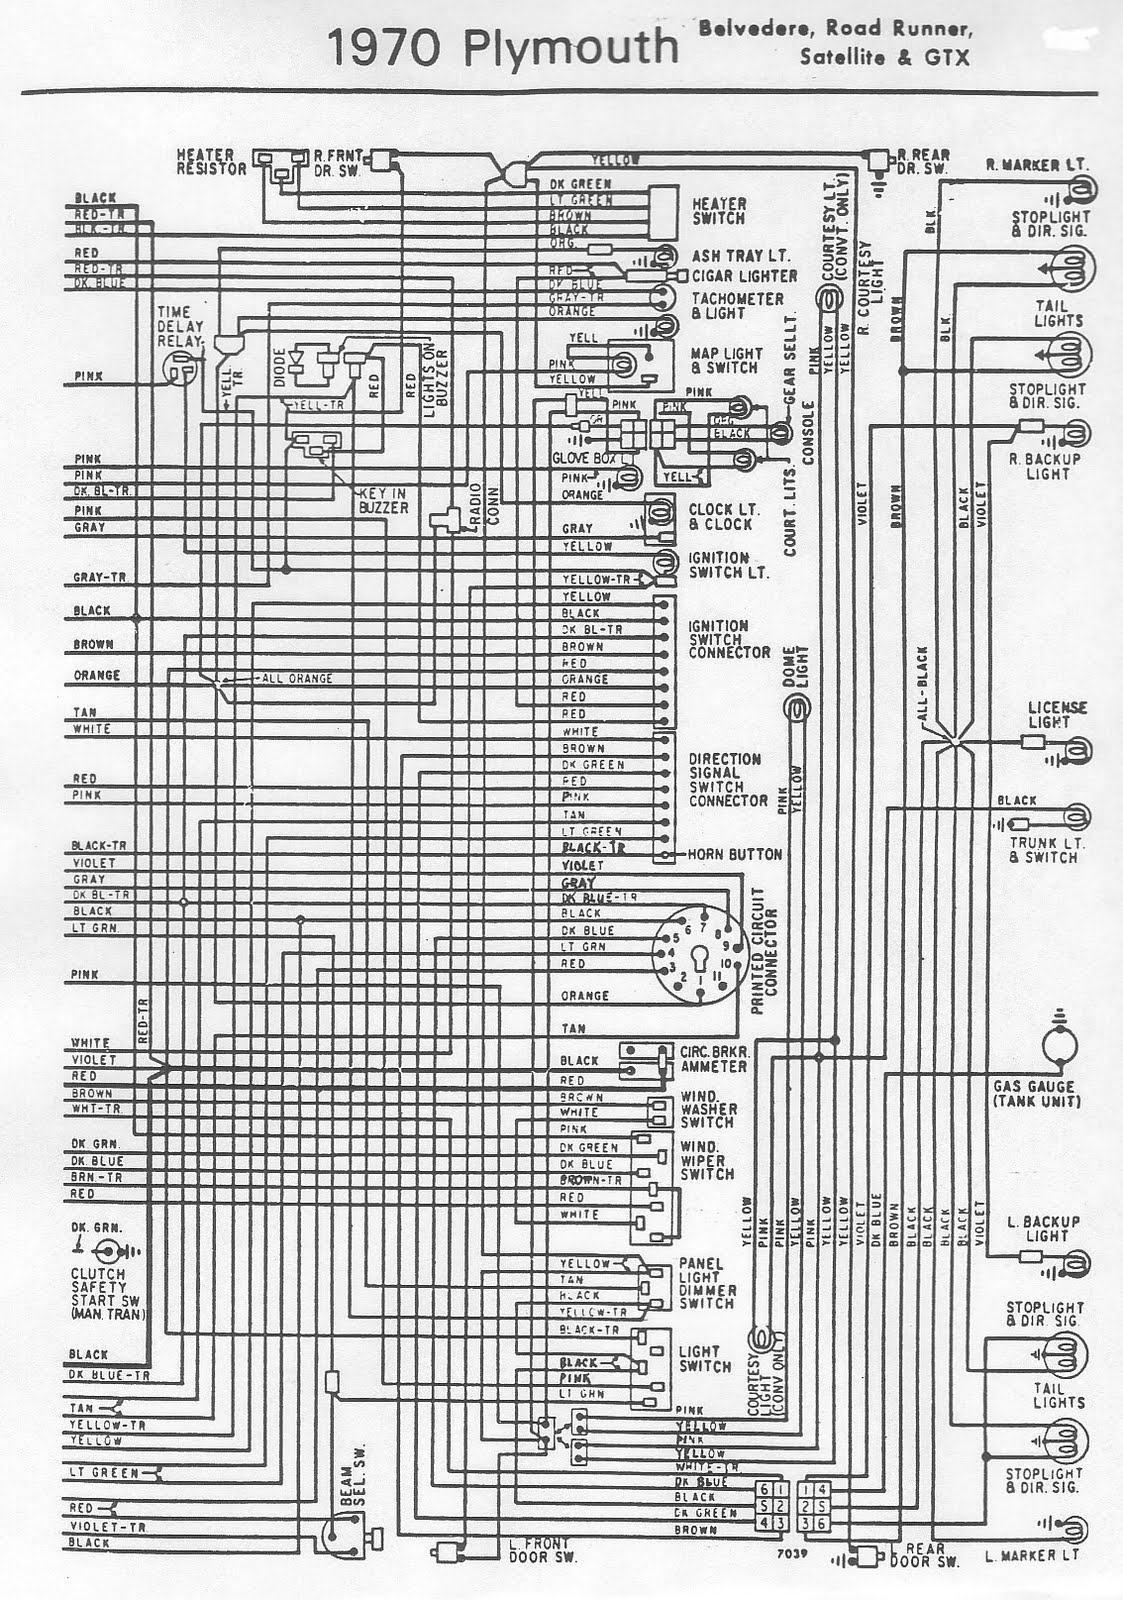 1967 Plymouth Fury Wiring Diagram Schematic Libraries Vw Engine Gtx Third Level1970 Level